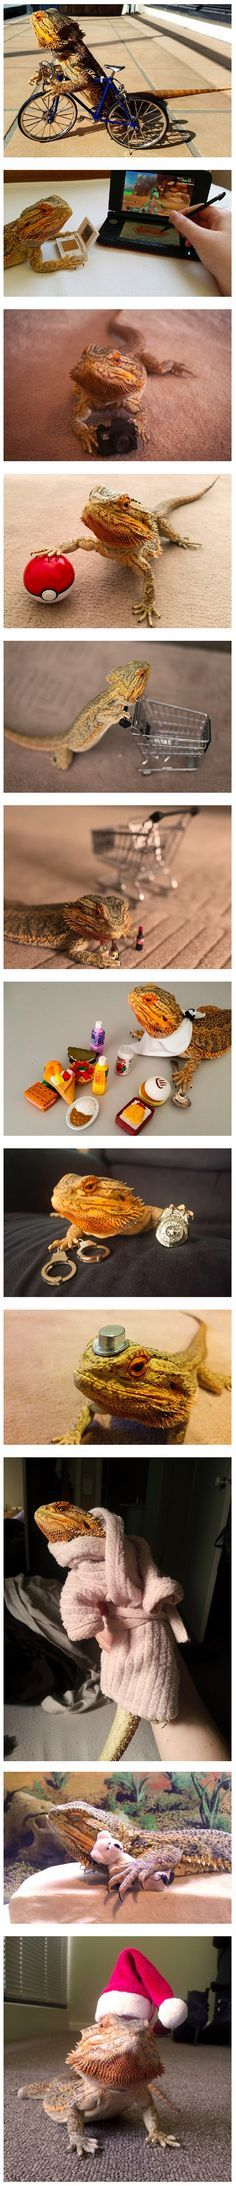 Pringle The Bearded Dragon Does Normal Human Activities In The Cutest Way Possible.